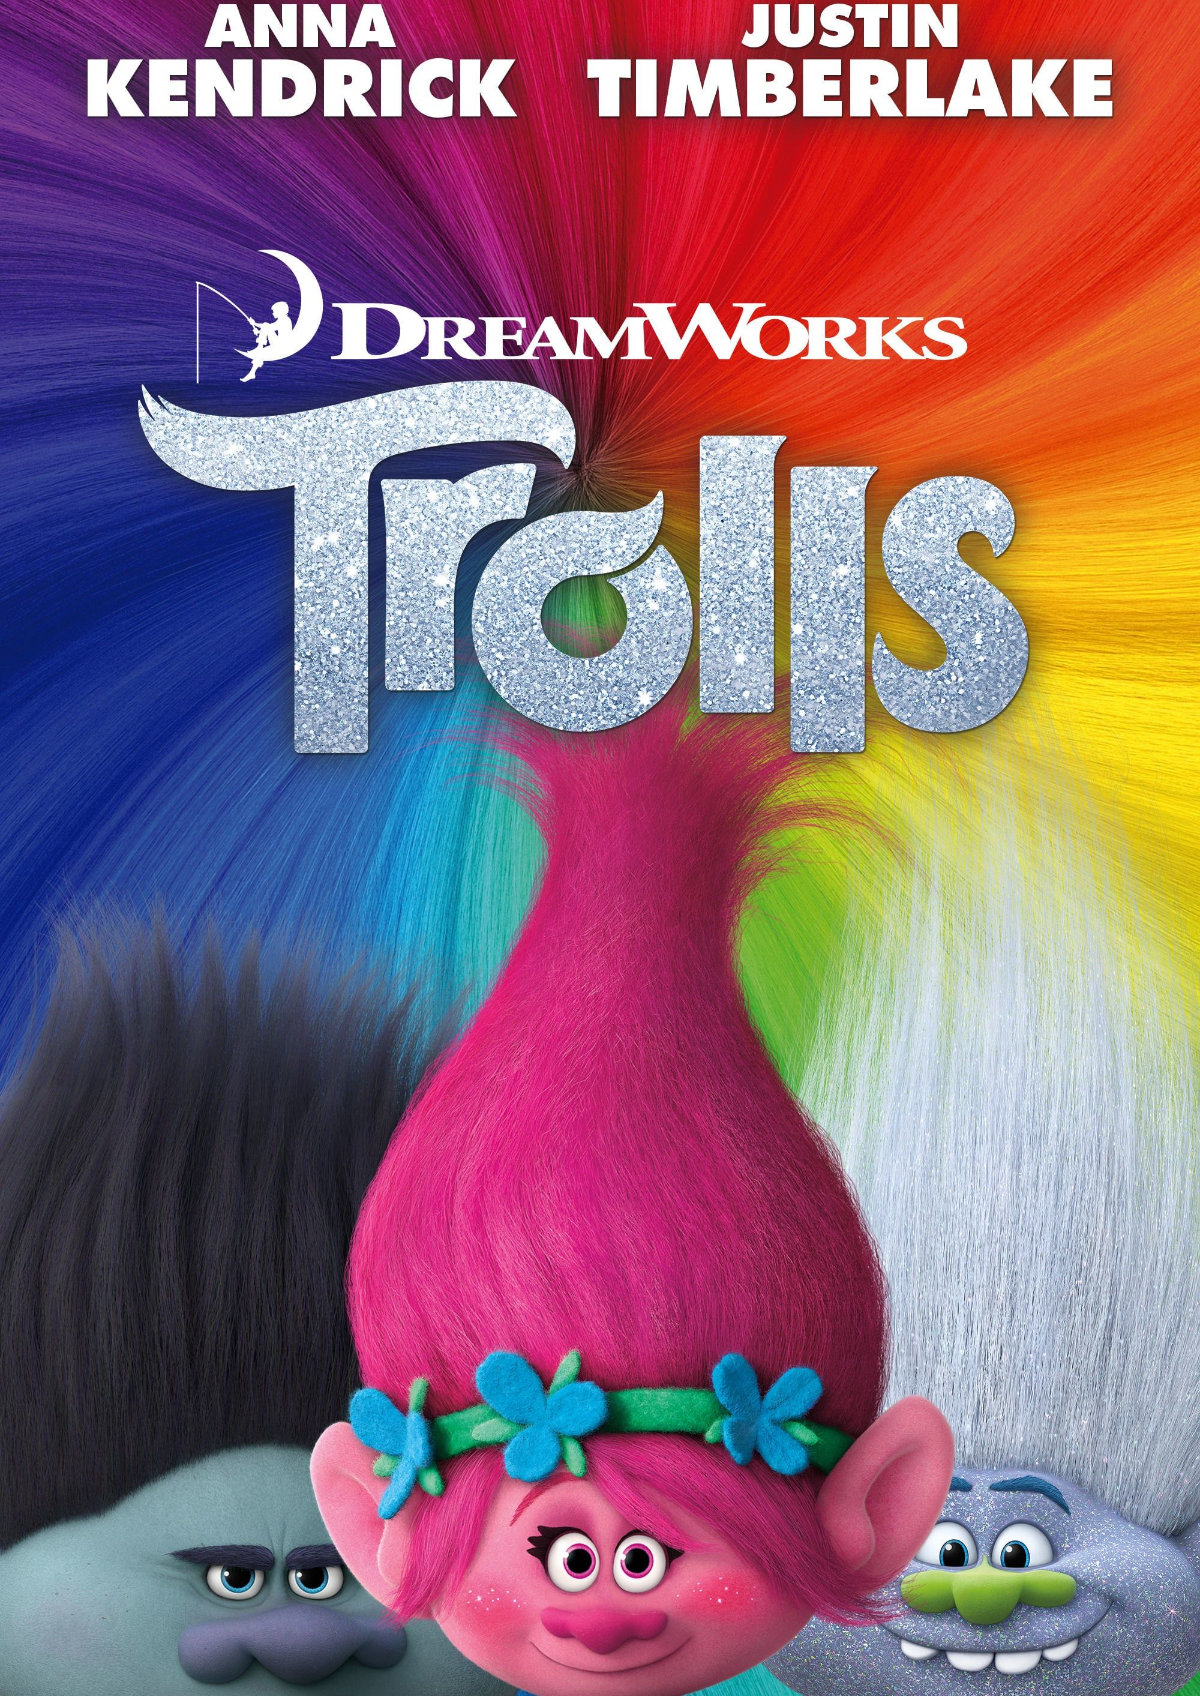 'Trolls' movie poster